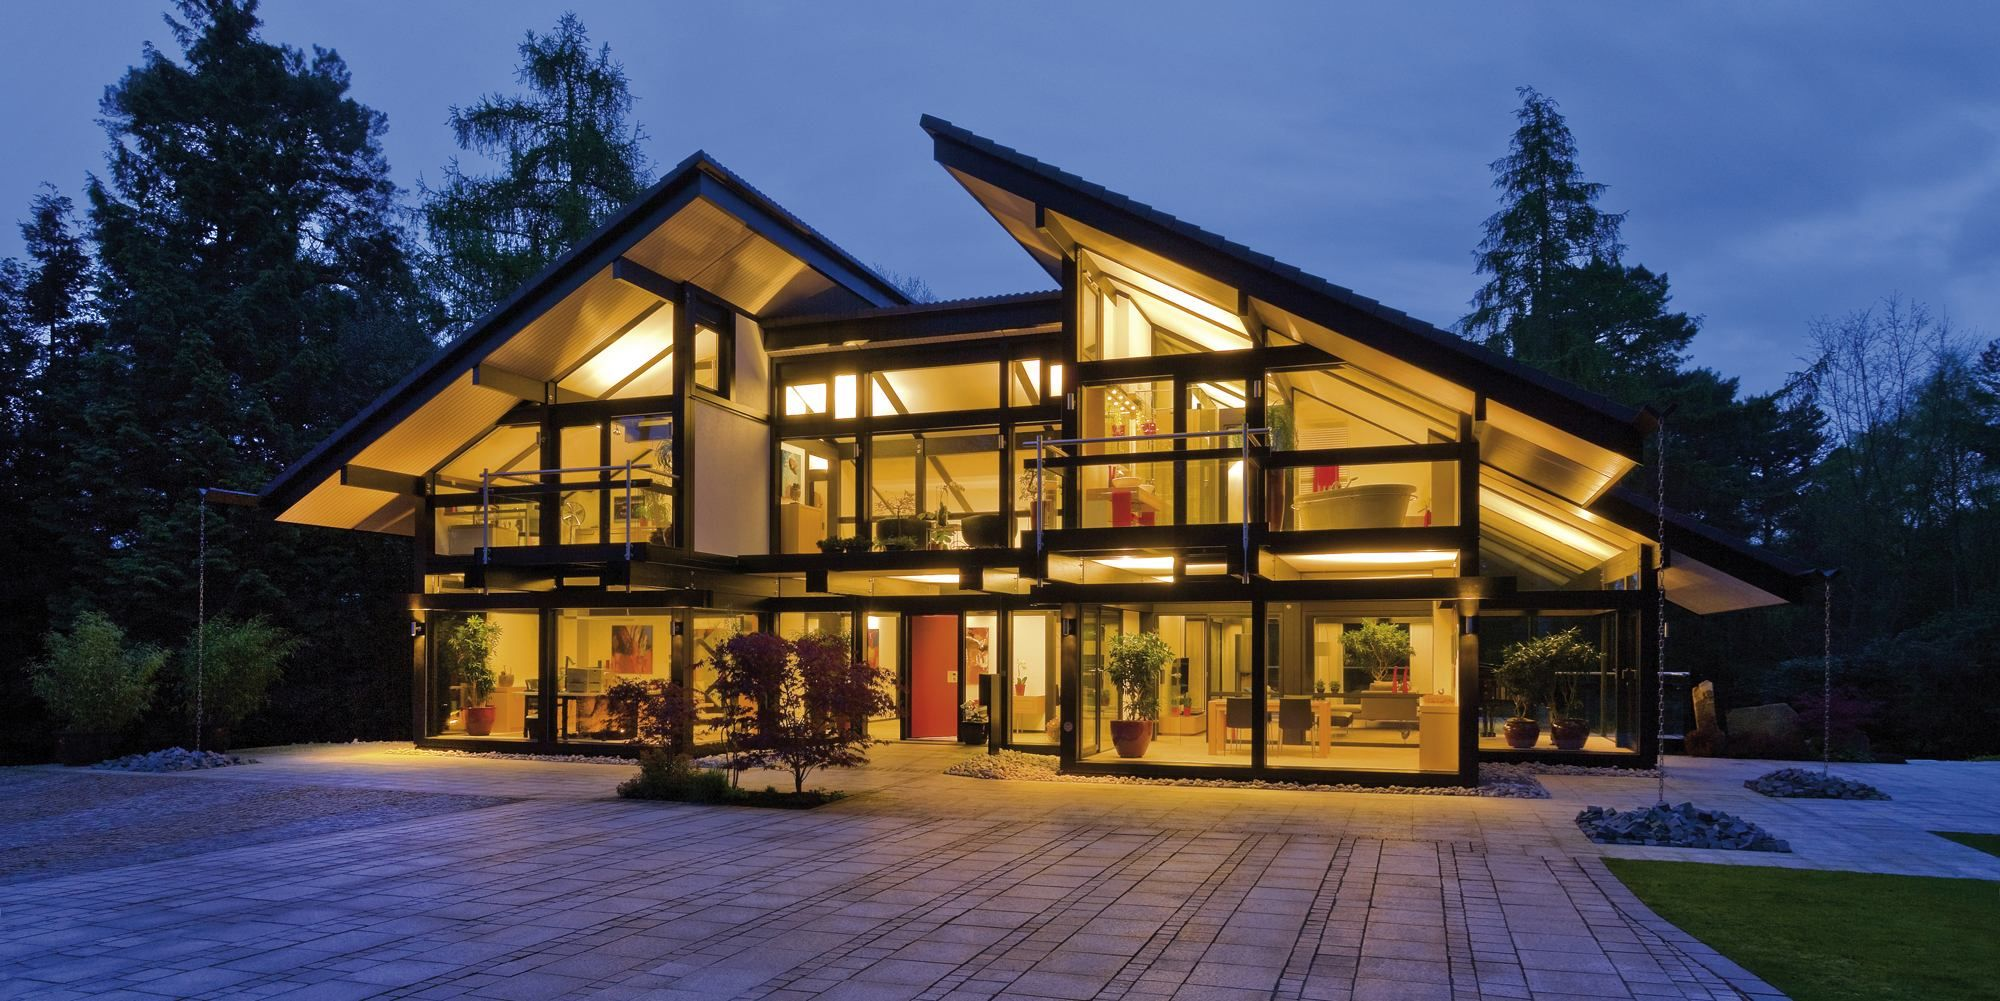 Huf haus luxury pre fab homes combine green design with for Builder magazine house plans